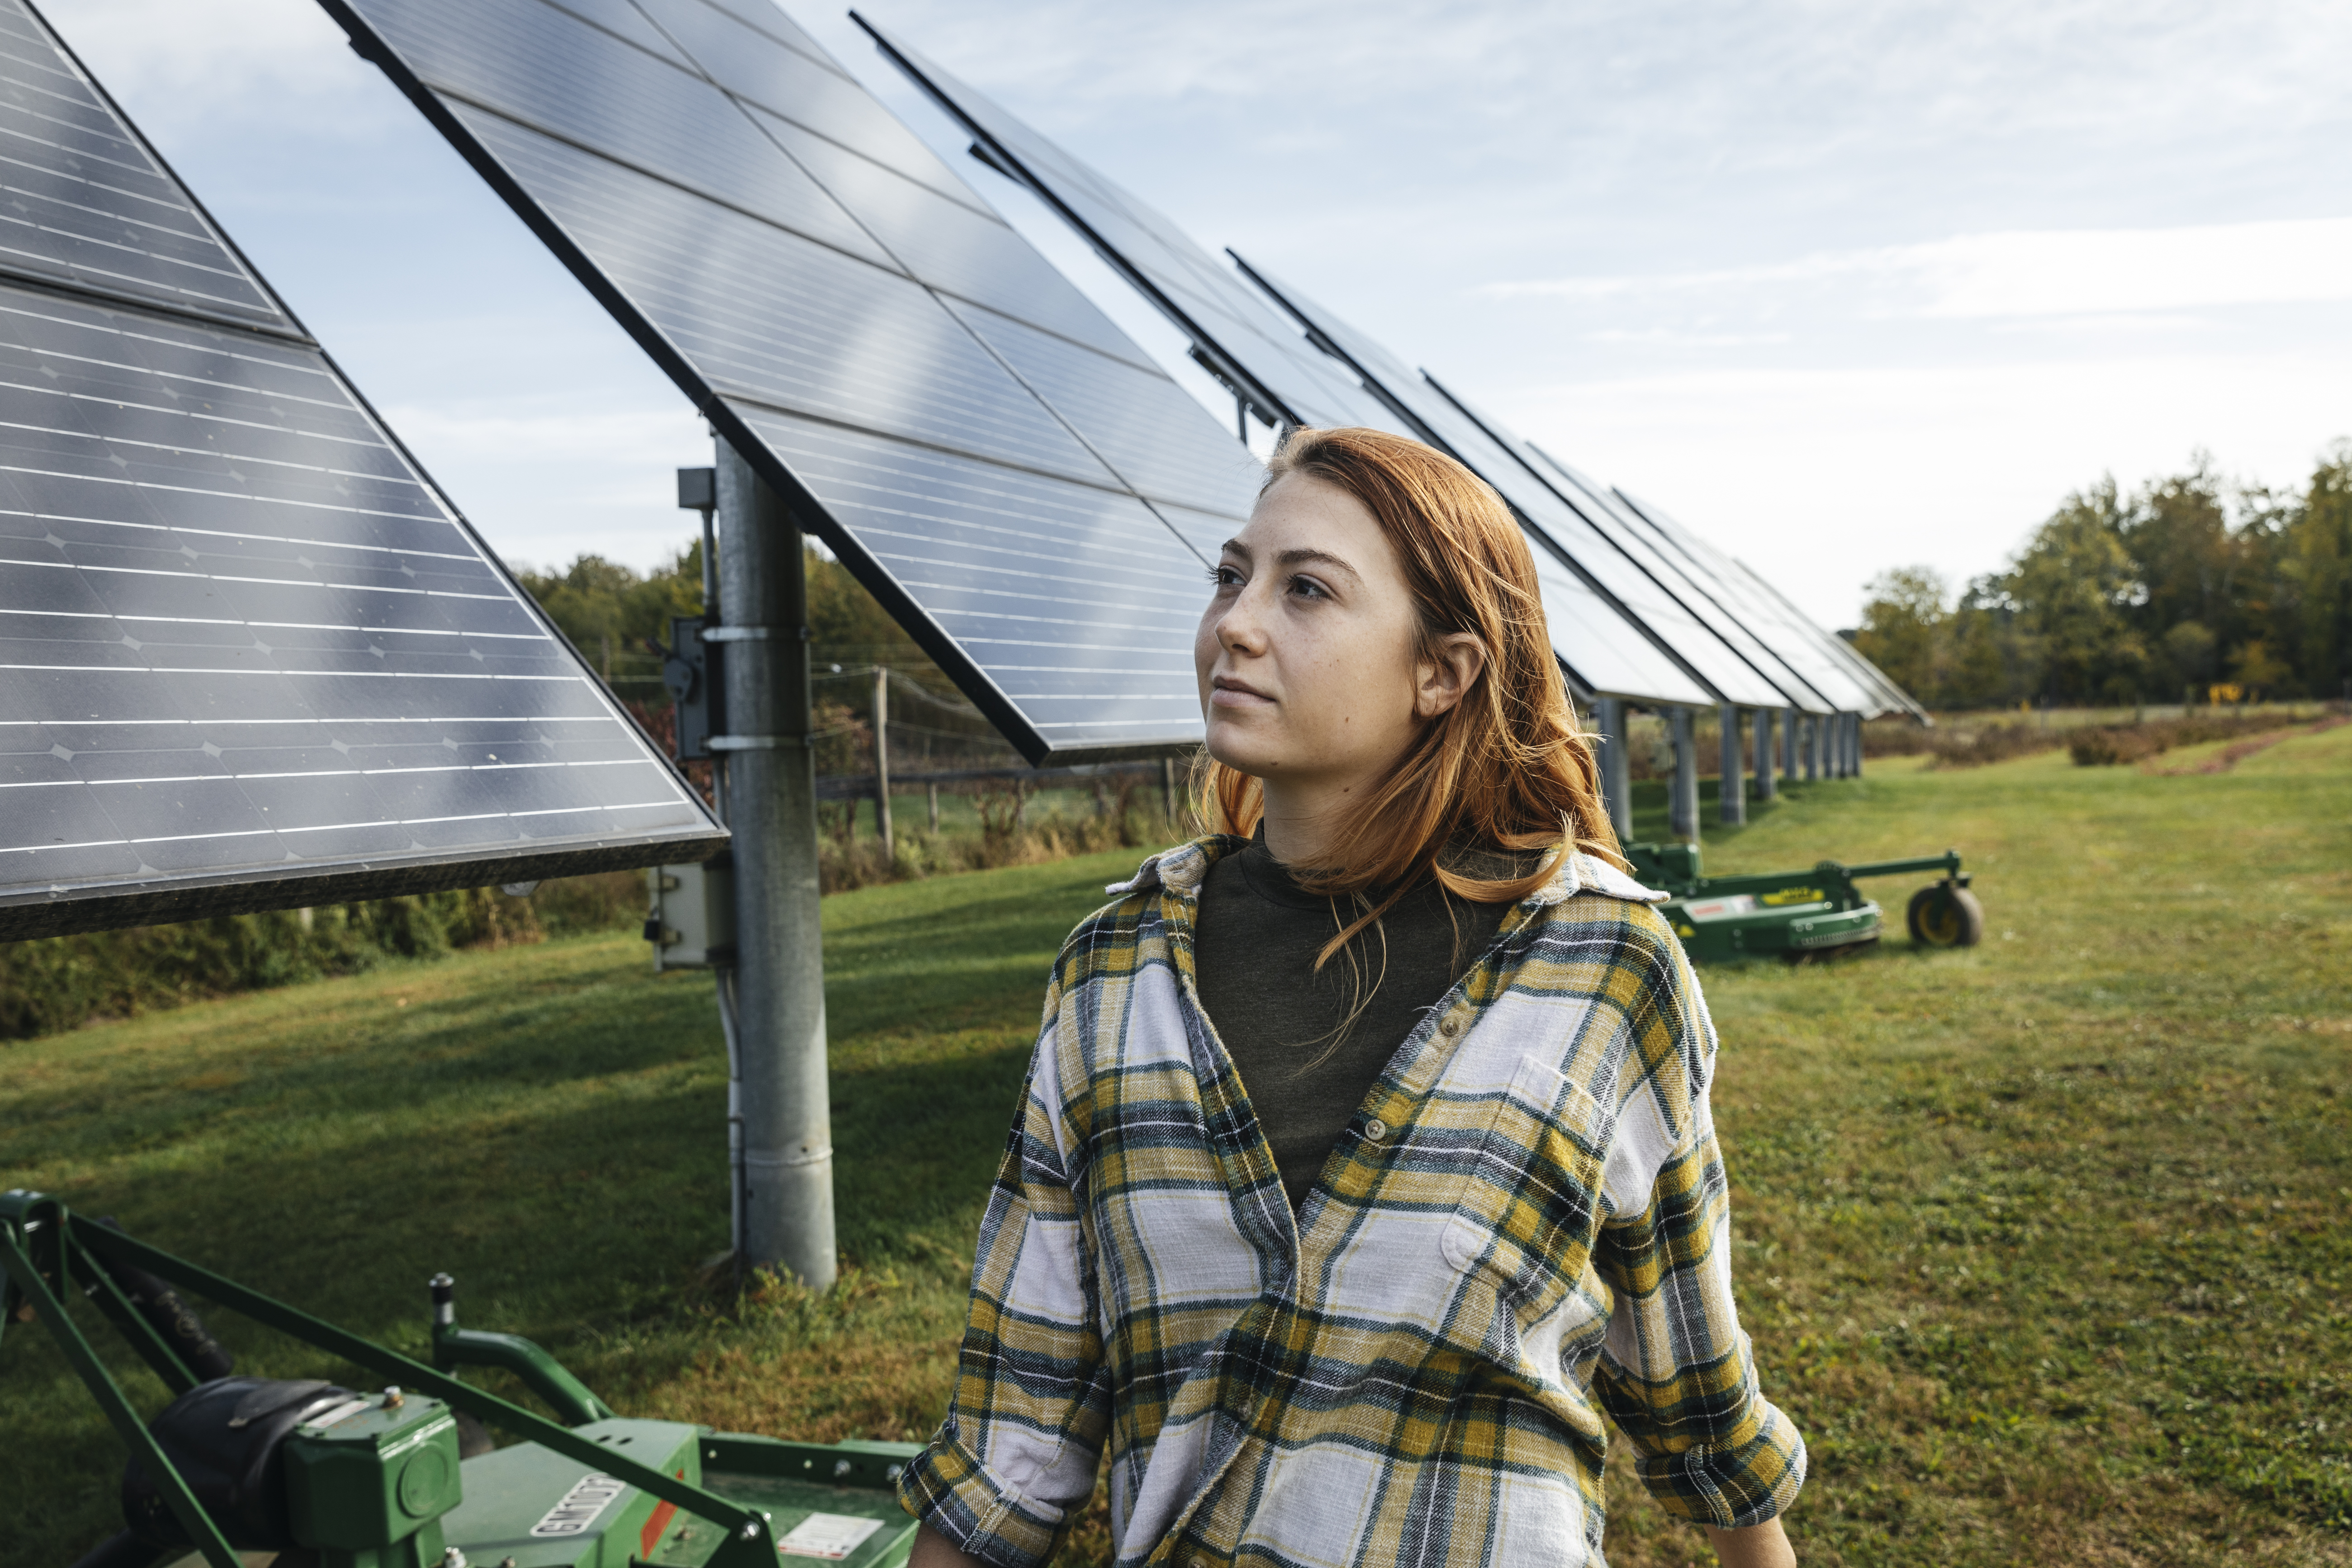 Young woman looking at solar panels on farm